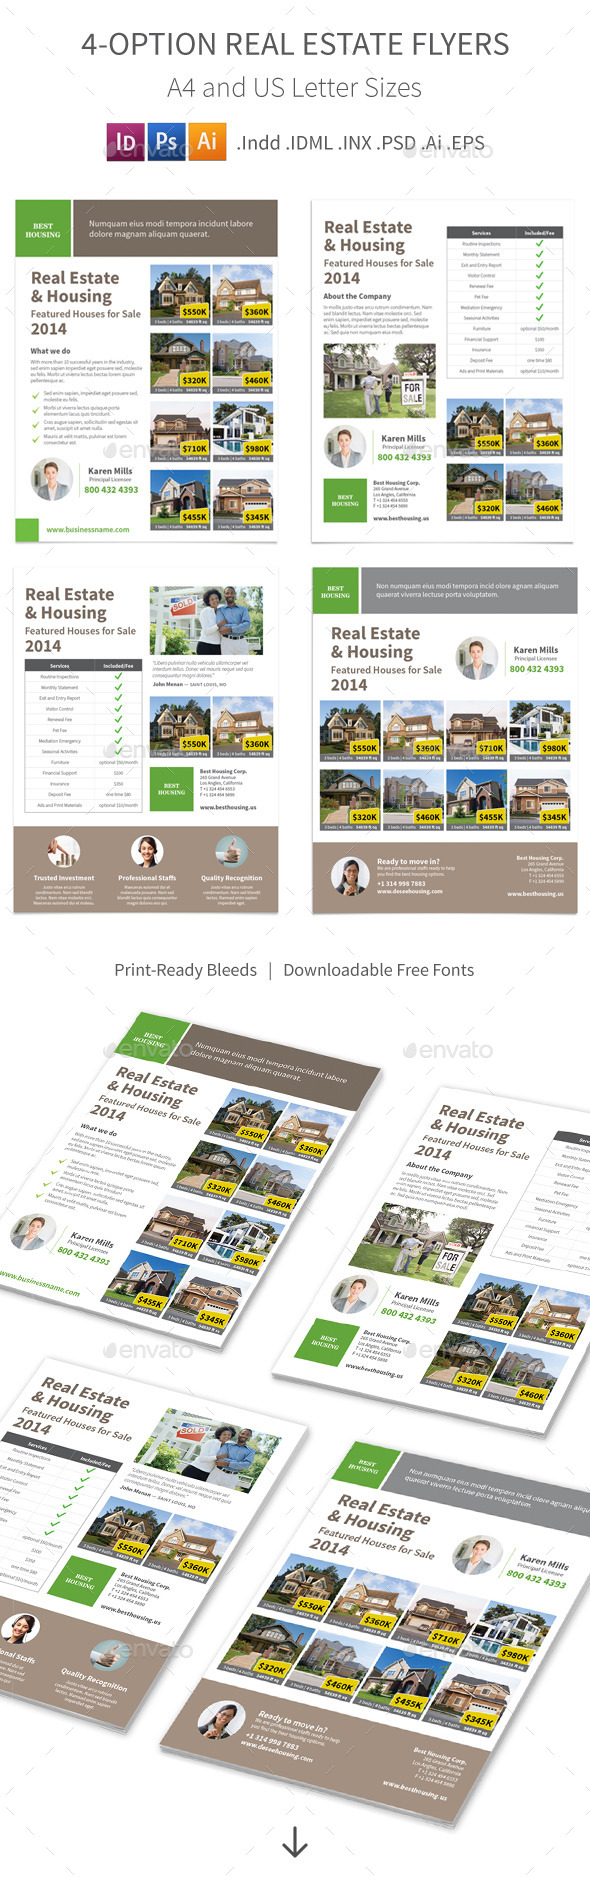 Real Estate Flyers – 4 Options - Informational Brochures